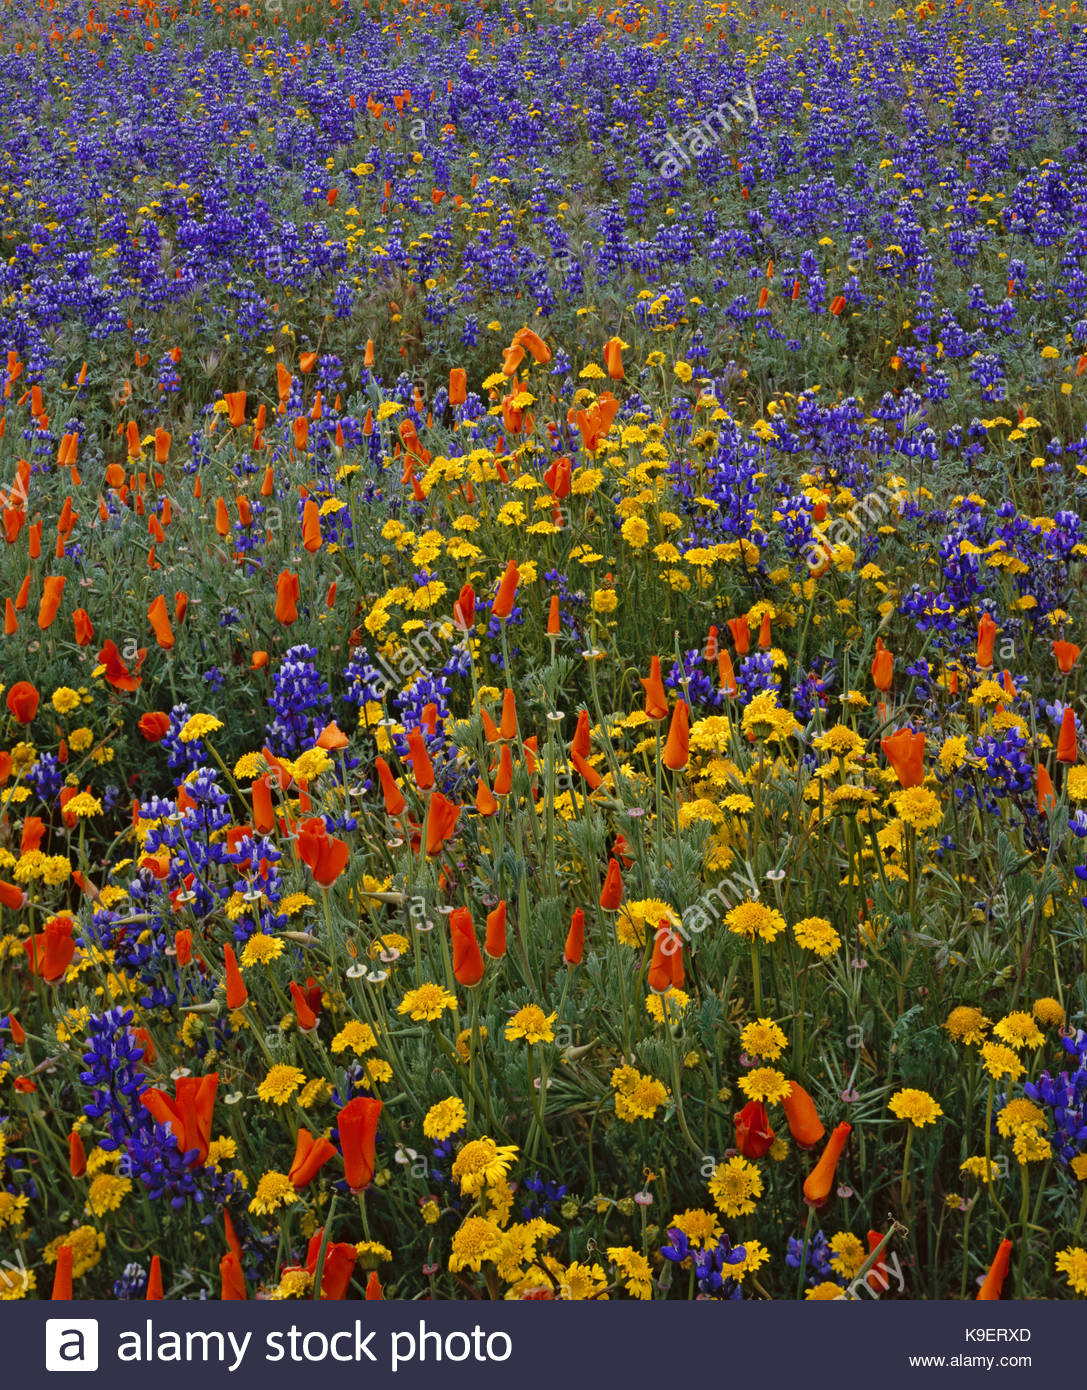 Poppies, Lupine and Goldfields, Carrizo Plain National Monument, California - Stock Image